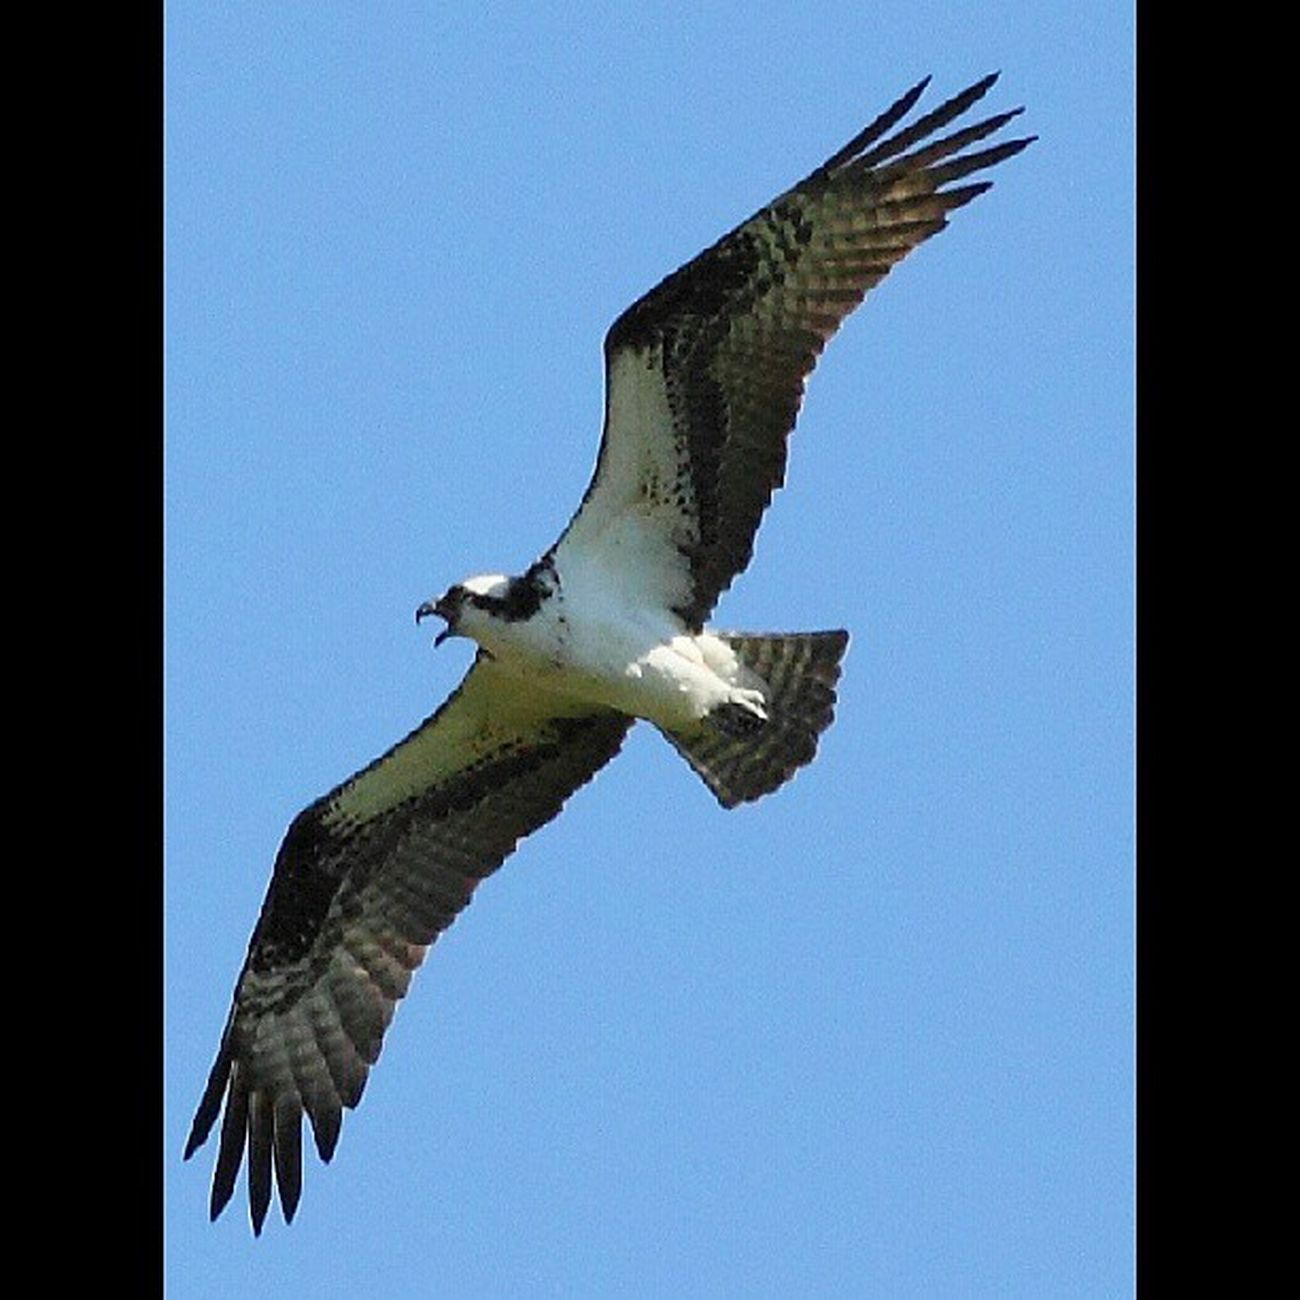 You can hear the osprey for miles Amazing_birds Birds_n_branches Birdfreaks Fabfaunas feather_perfection feather_features nature_perfection nuts_about_birds underdogs_feathers whatschirping wildlife_perfection